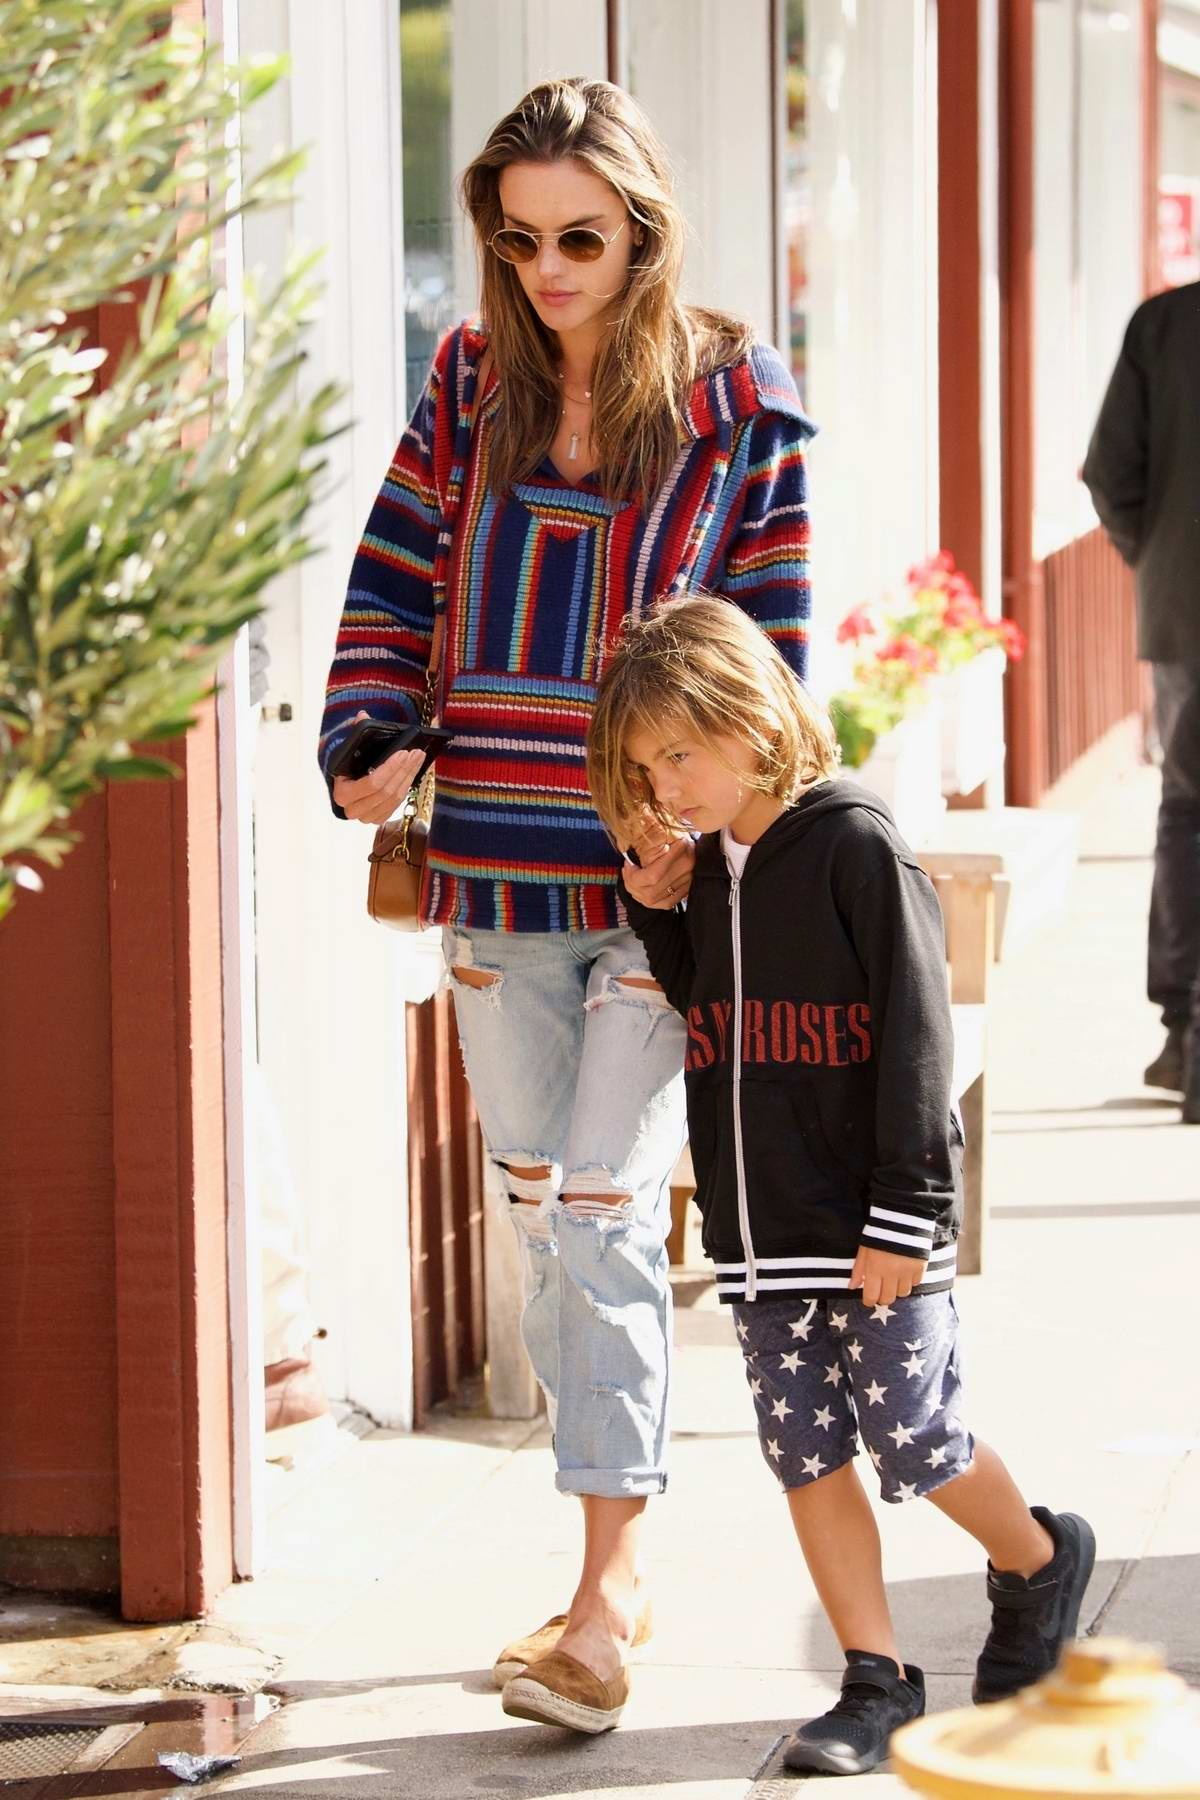 Alessandra Ambrosio seen wearing a colorful hoodie while out with her son in Los Angeles